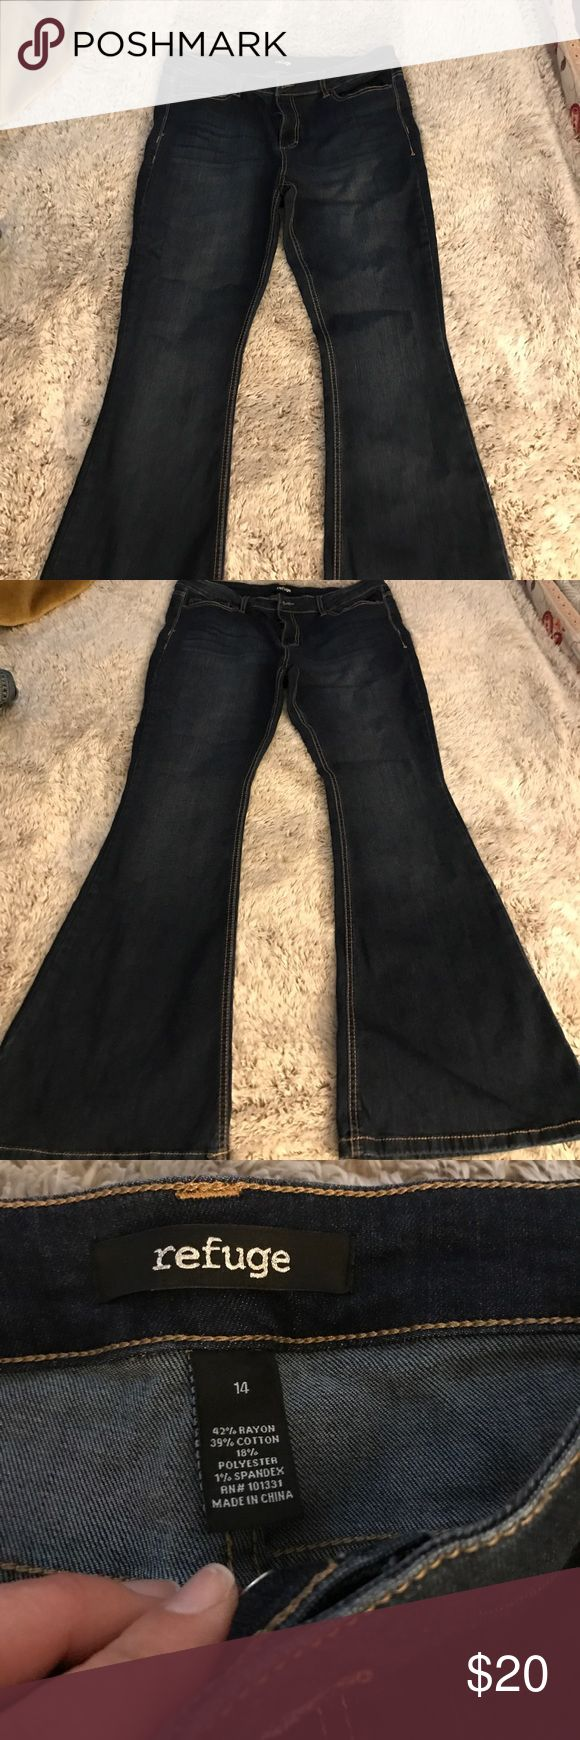 Women's flare jeans size 14 From Charlotte Russe. New without tags. Size 14 they are super cute. Jeans Flare & Wide Leg